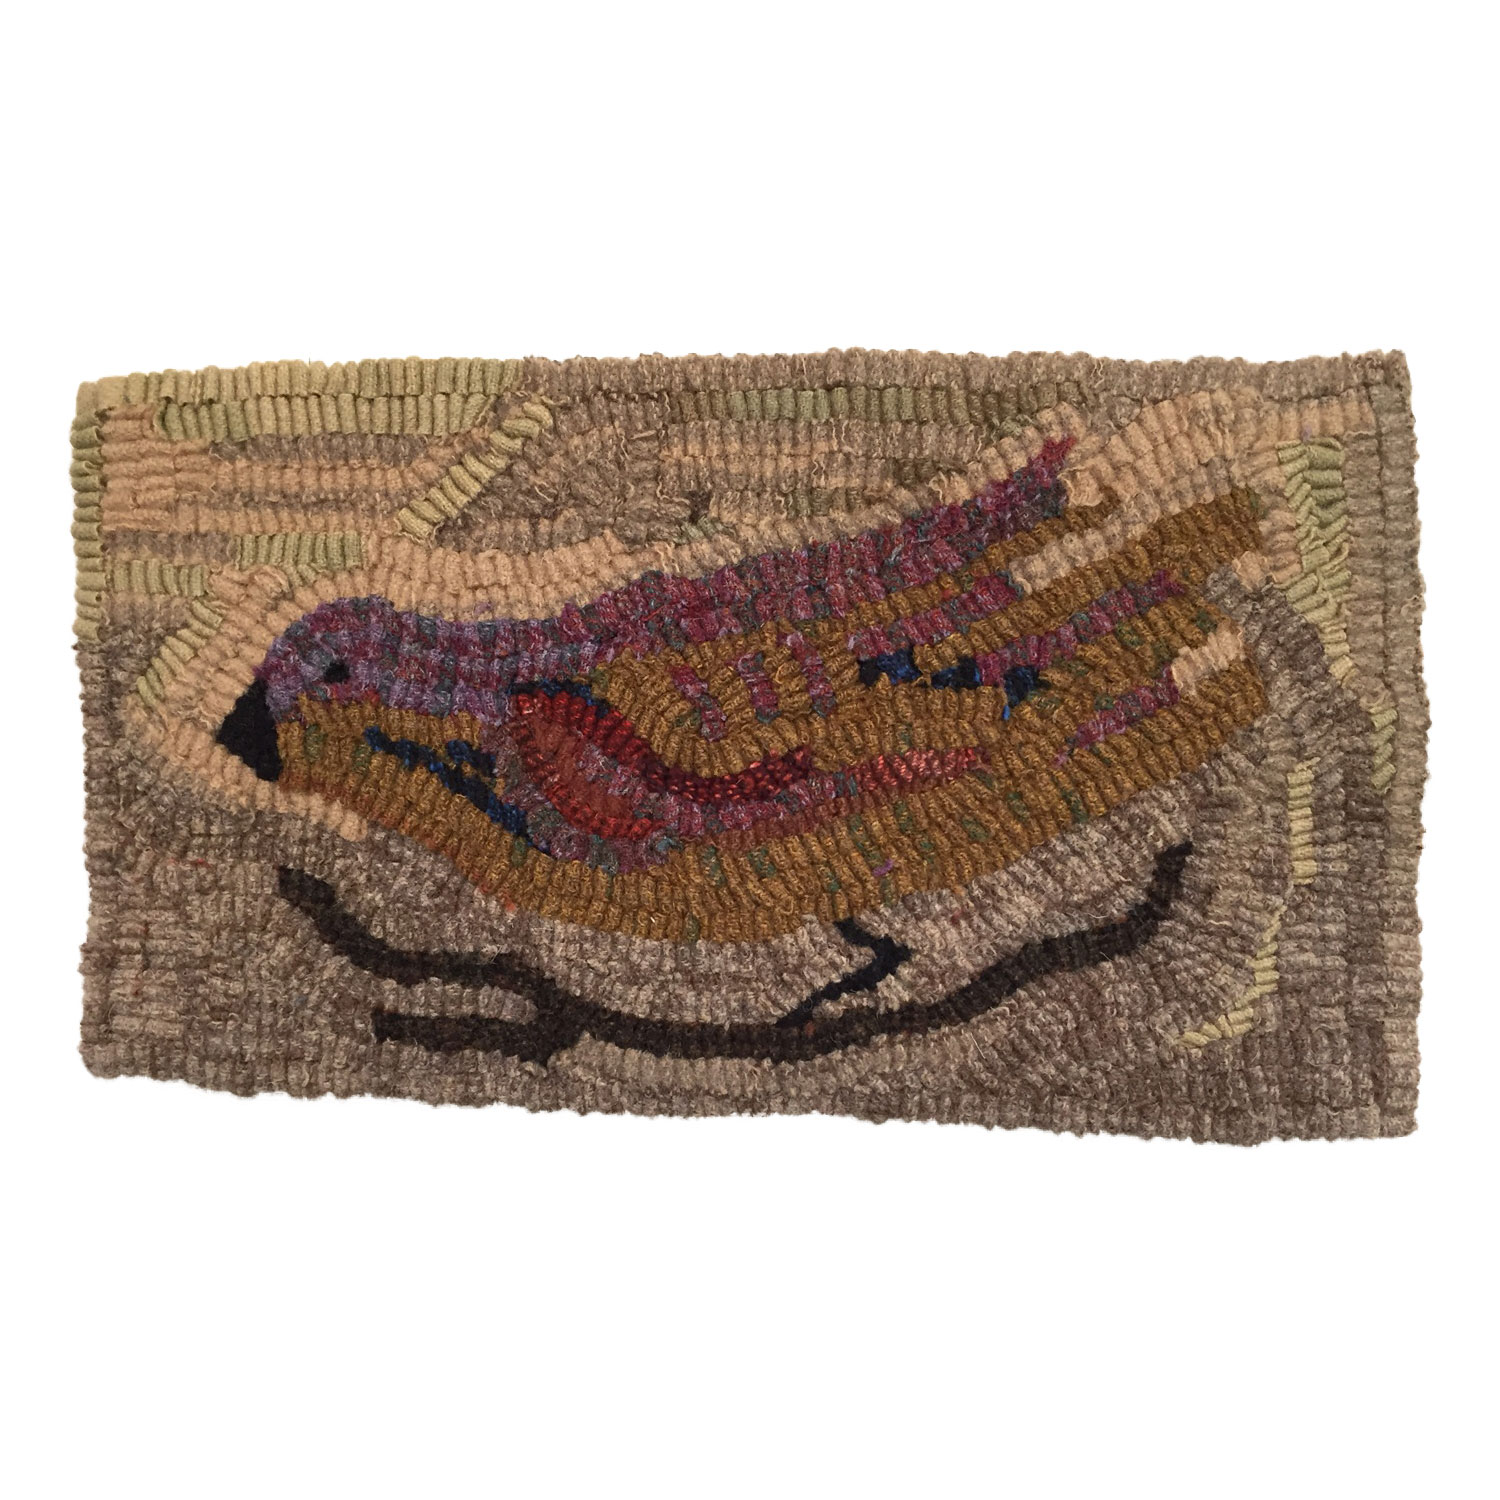 Ruthie the Bird Hooked Rug